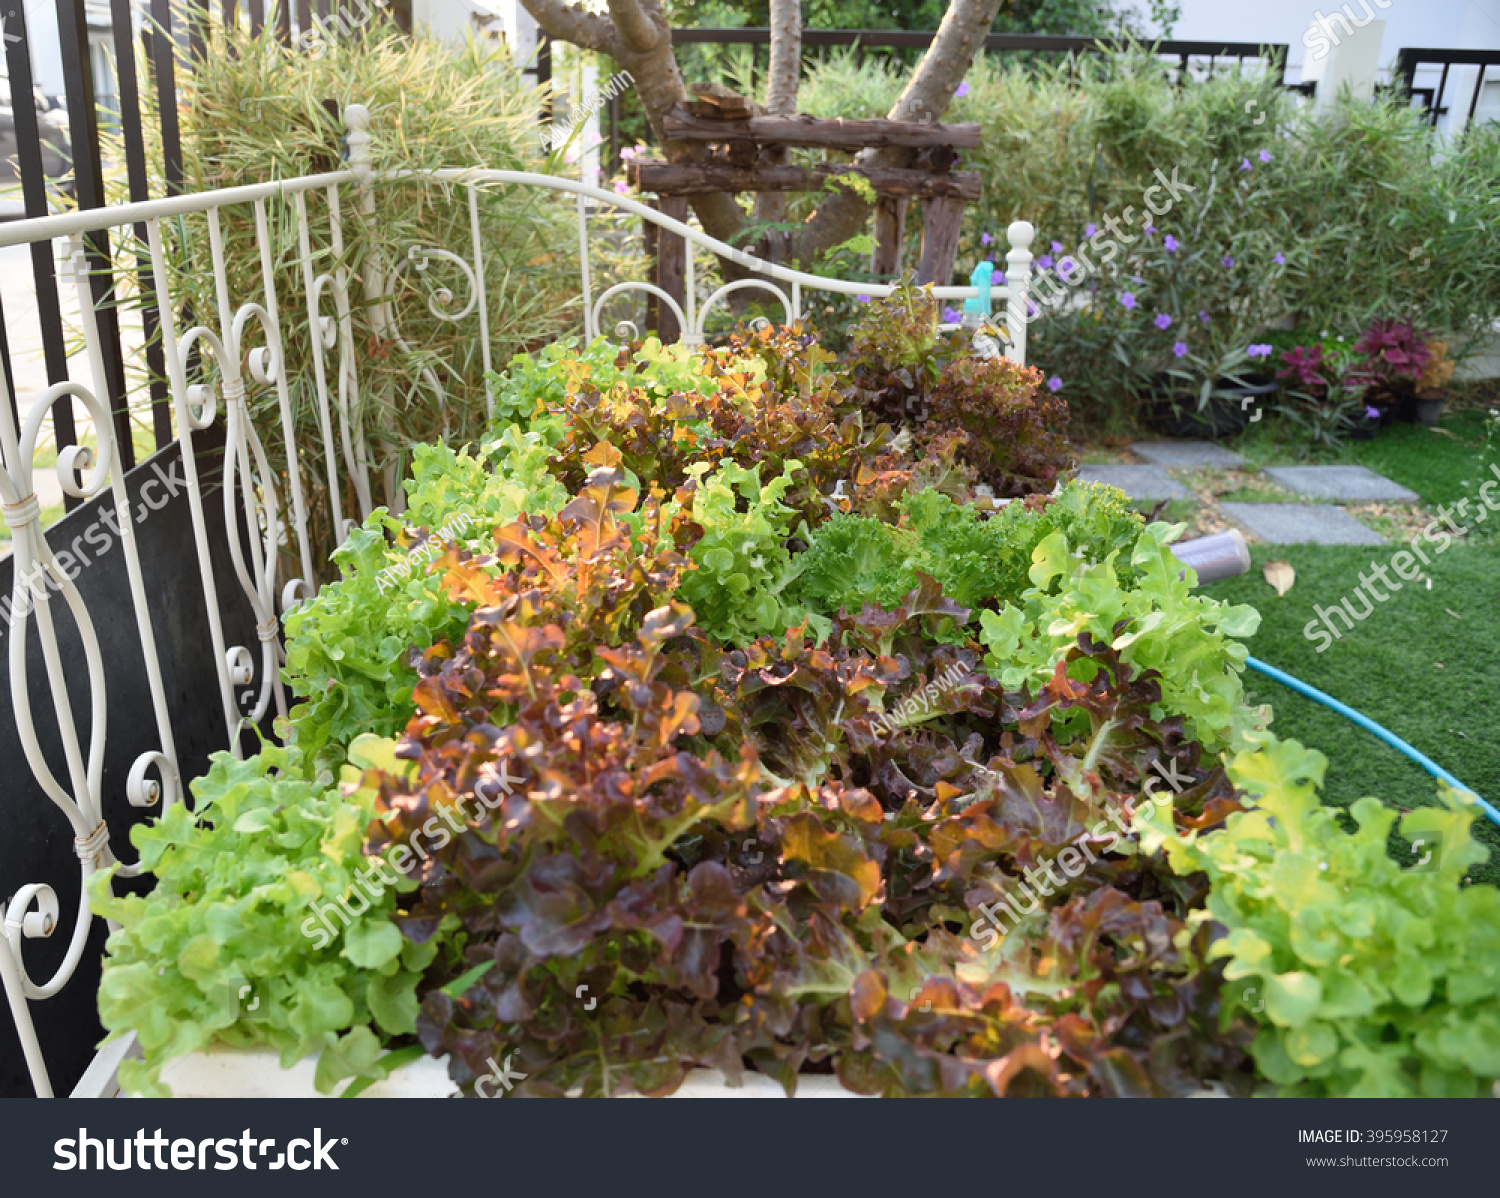 Home Salad Garden Vintage Bed Growing Stock Photo (Royalty Free ...